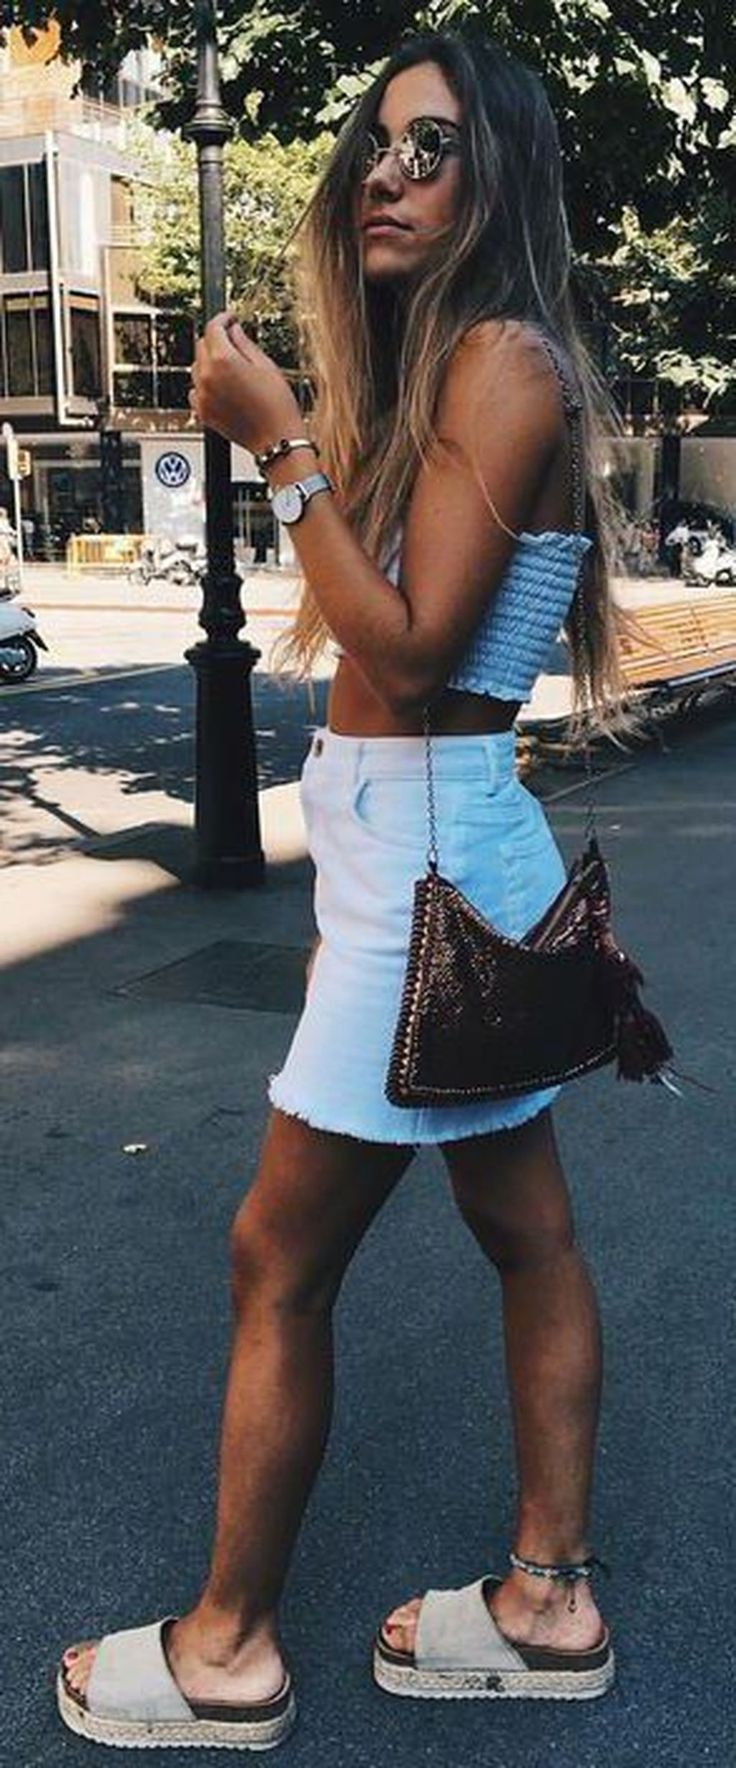 Awesome 45 Trendy Teen Fashion 2018 Ideas For Spring. More at https://trendfashionist.com/2018/03/04/45-trendy-teen-fashion-2018-ideas-spring/